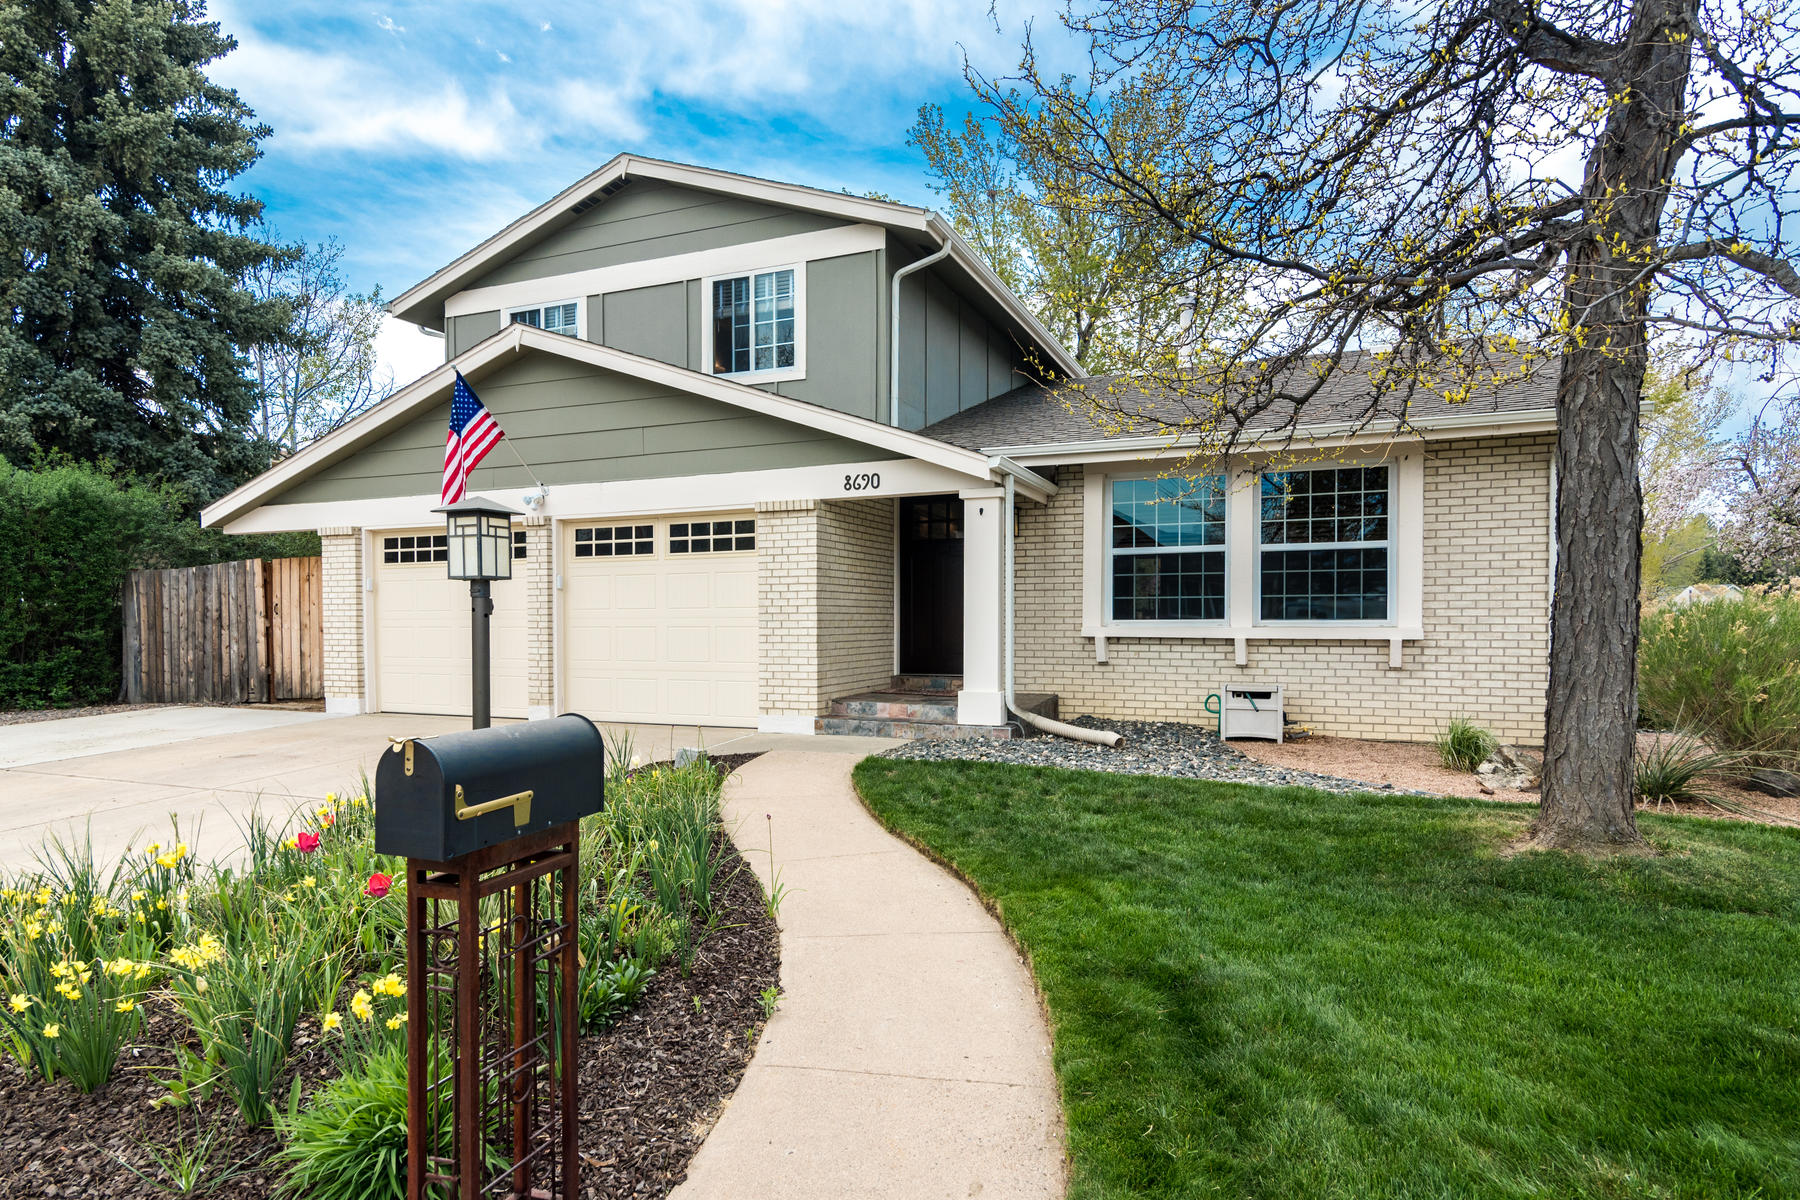 Single Family Homes για την Πώληση στο Rarely Do You Get to Have Such a Finely Appointed and Updated Home. 8690 W 78th Place, Arvada, Κολοραντο 80005 Ηνωμένες Πολιτείες